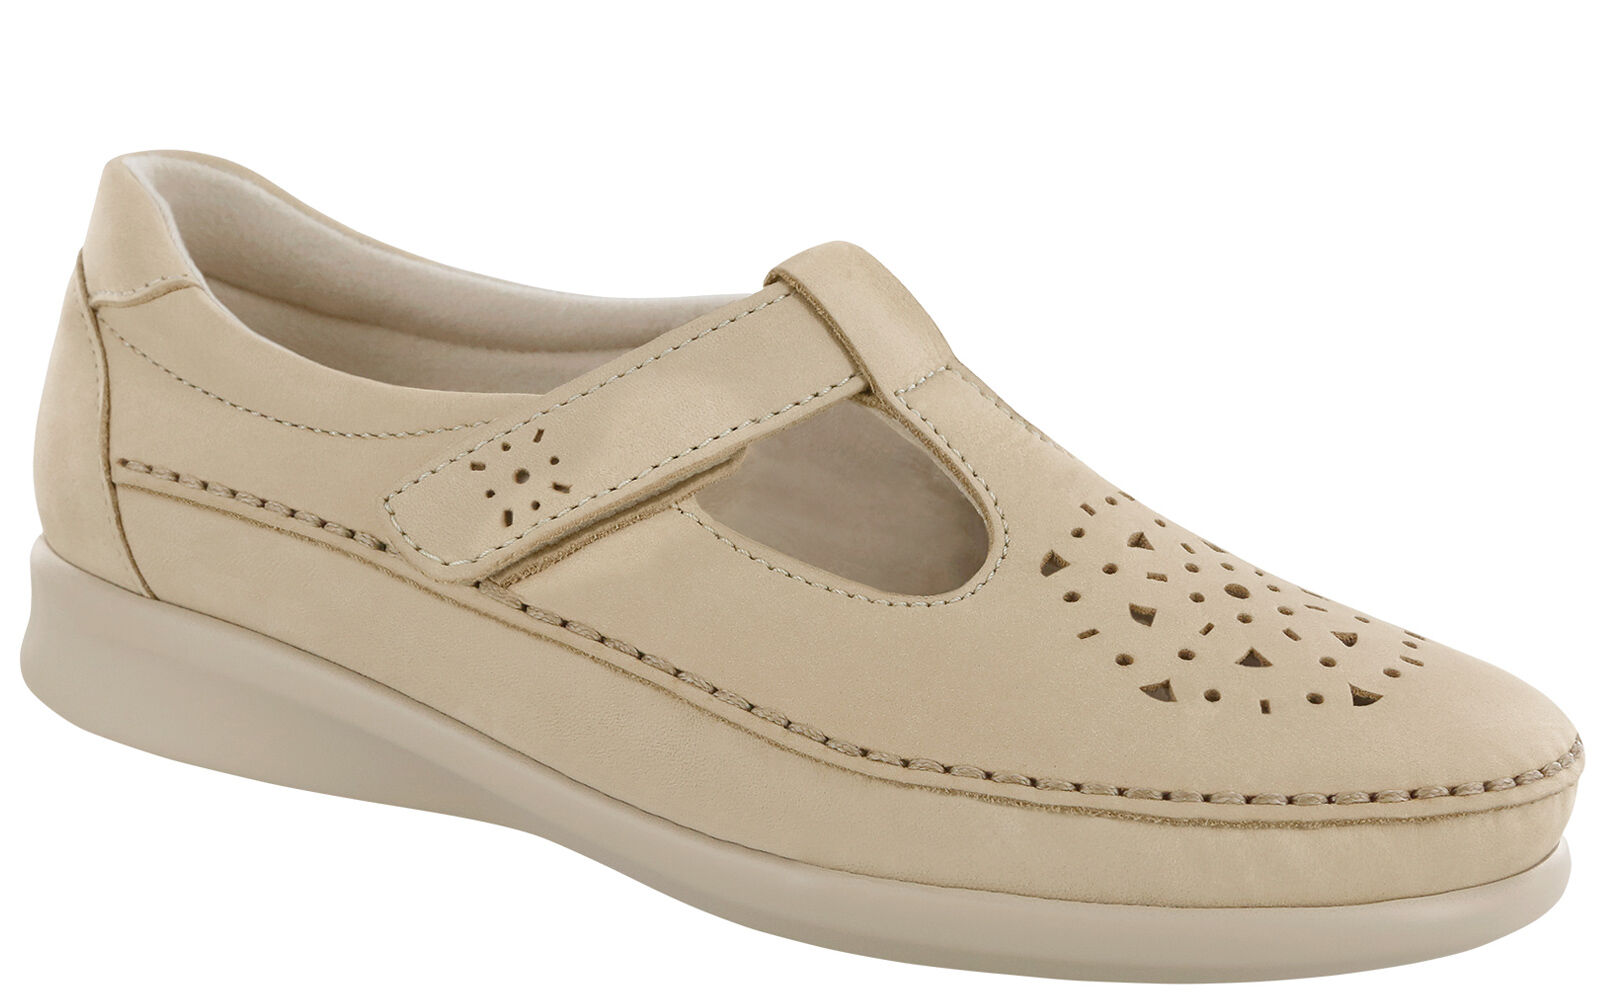 Willow Slip On Loafer   Outlet   SAS Shoes